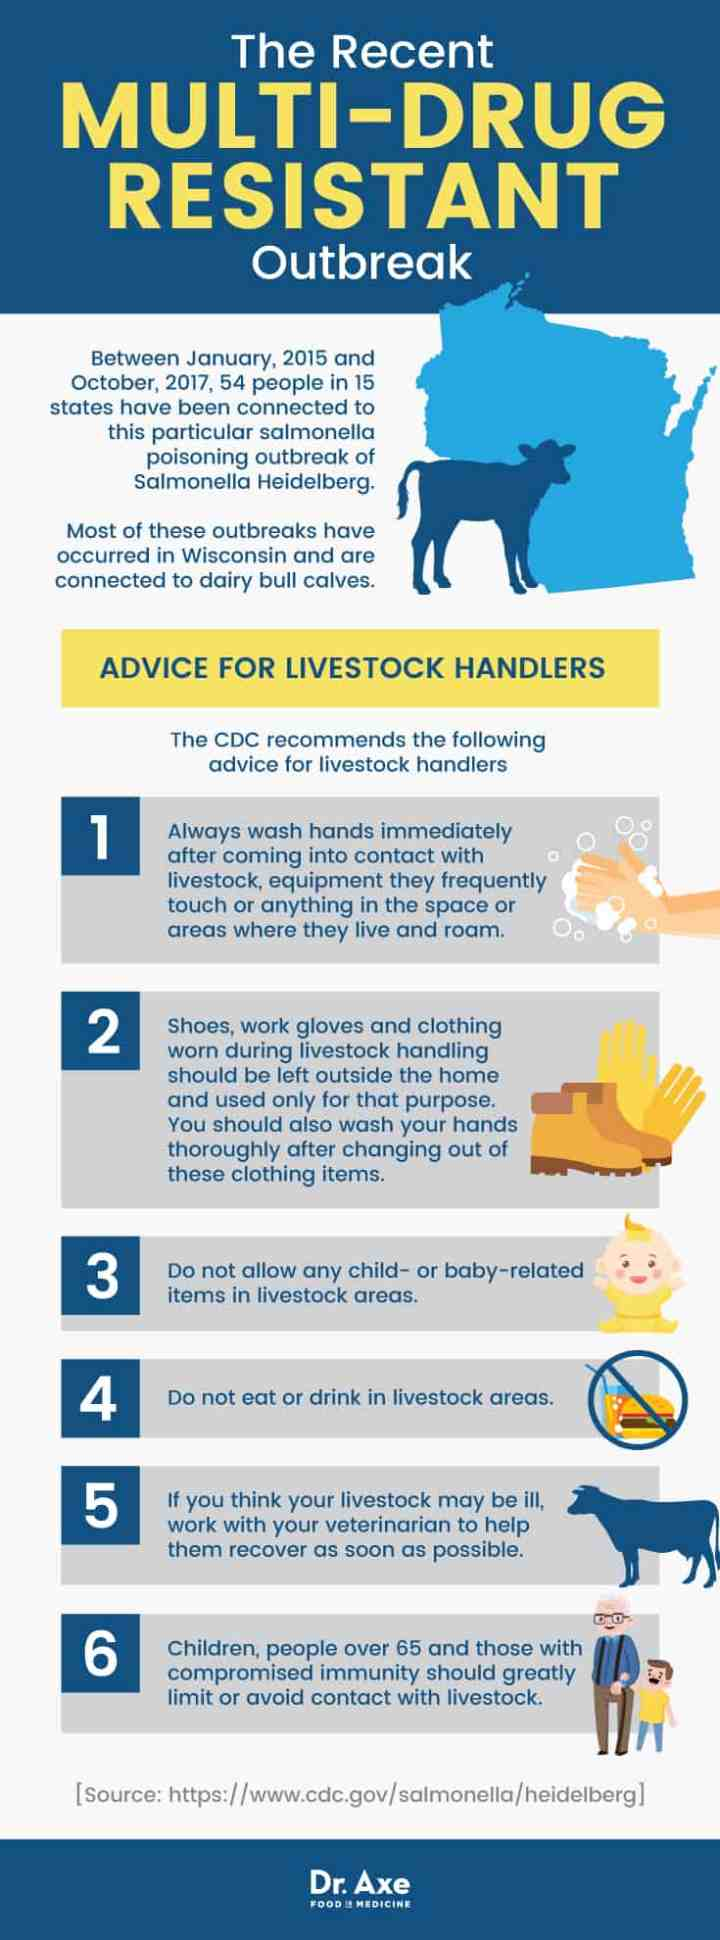 Salmonella poisoning: advice for livestock handlers - Dr. Axe